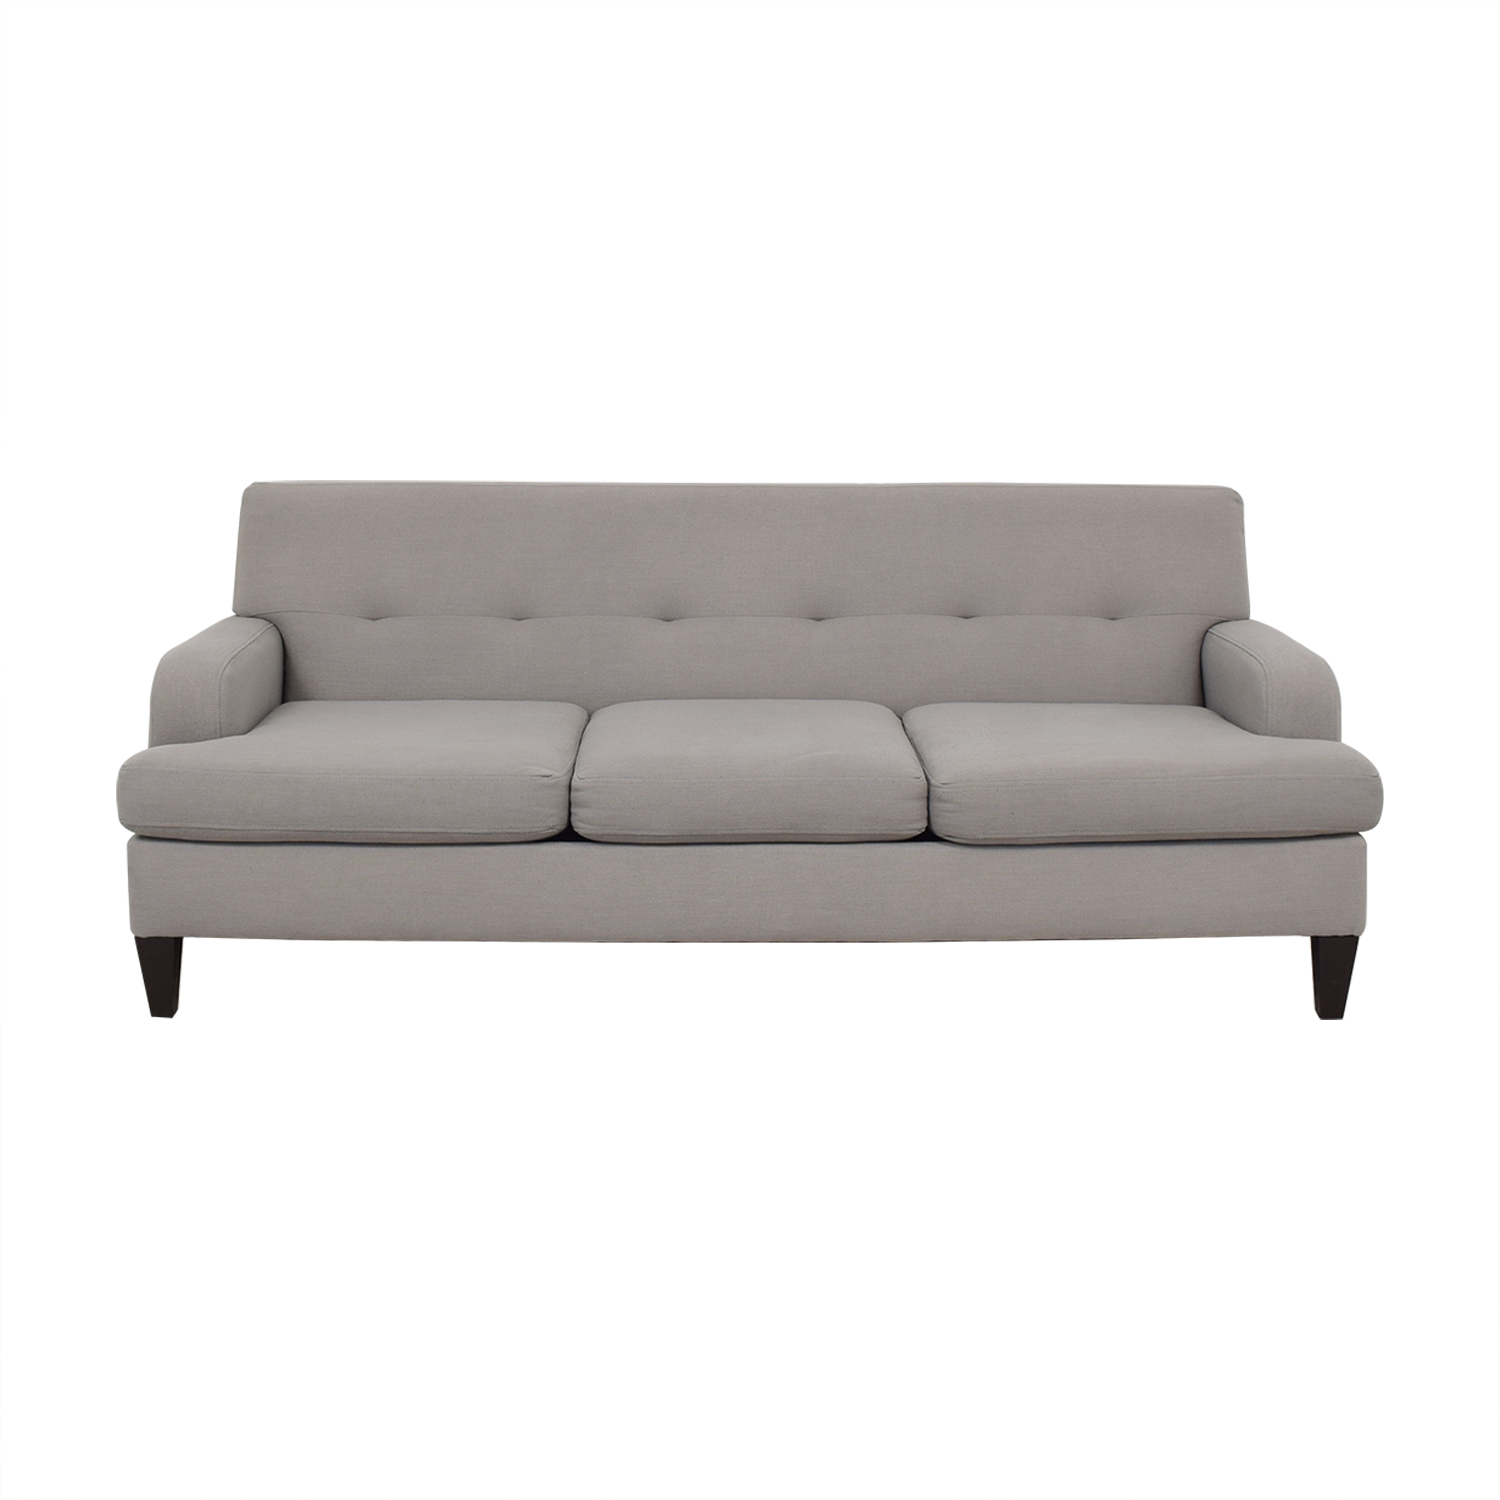 shop Macy's Macy's Jillian Sofa online